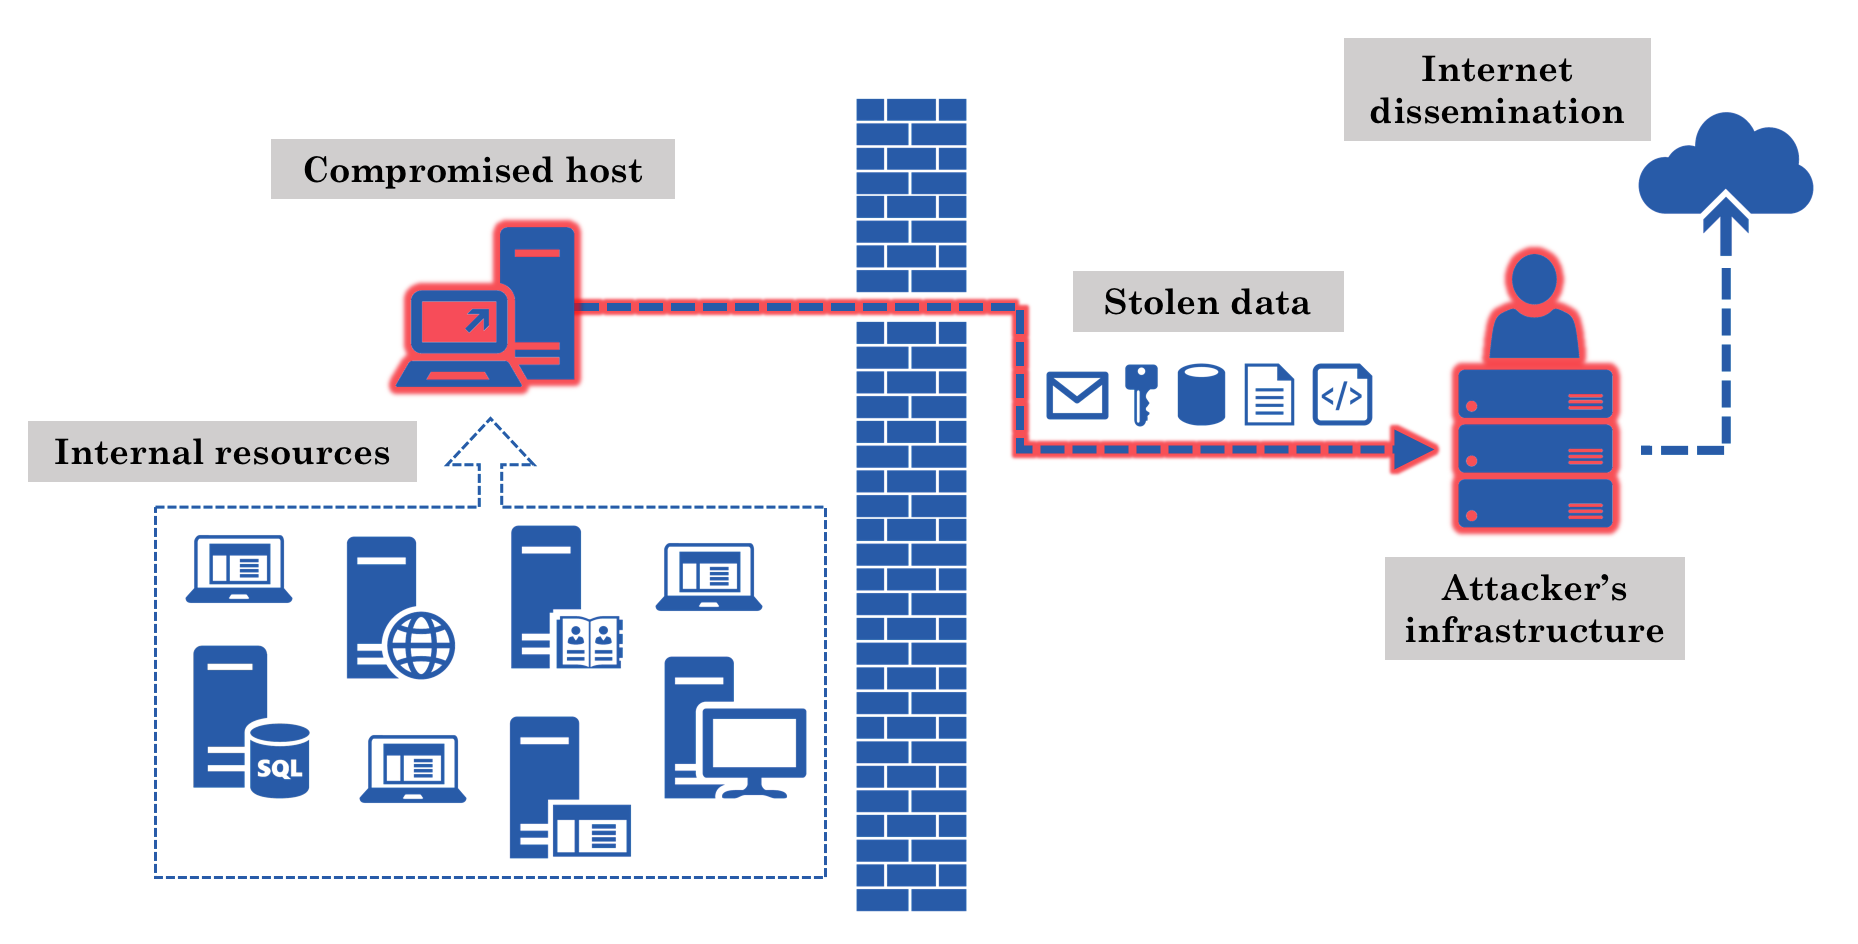 The path of exfiltrated data as it flows out of an organization's network